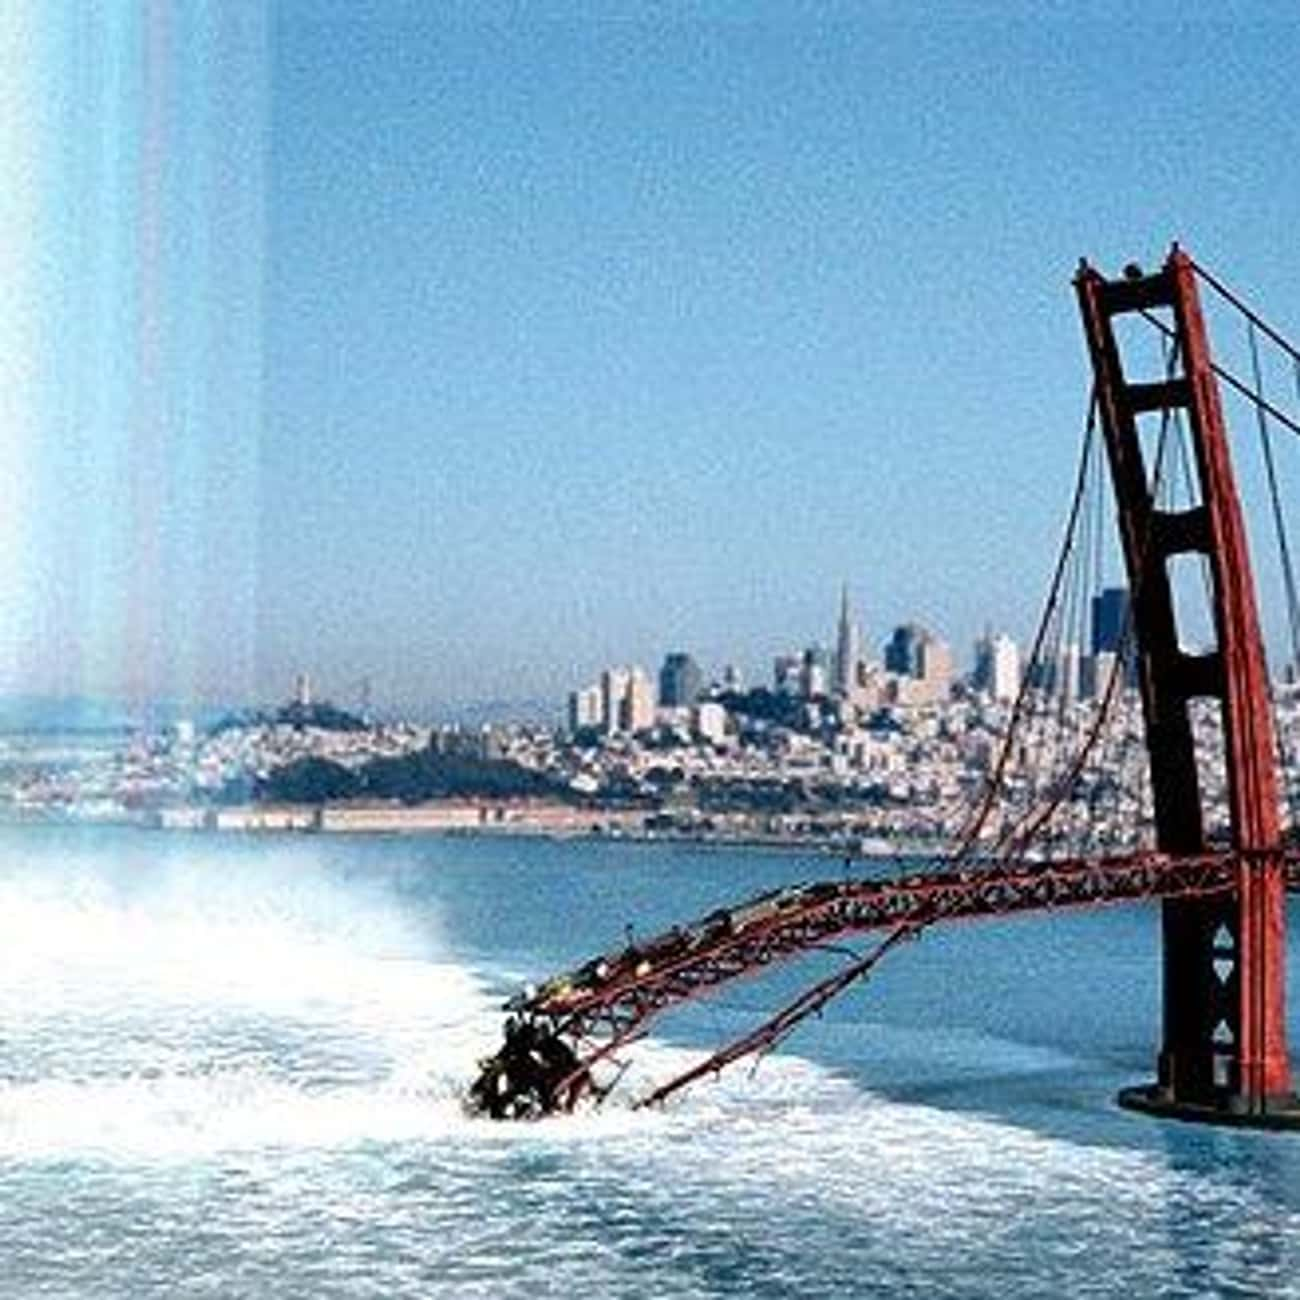 Suspension Bridges Ignore Phys is listed (or ranked) 2 on the list The Most Idiotic Bad-Science Moments in Disaster Movies